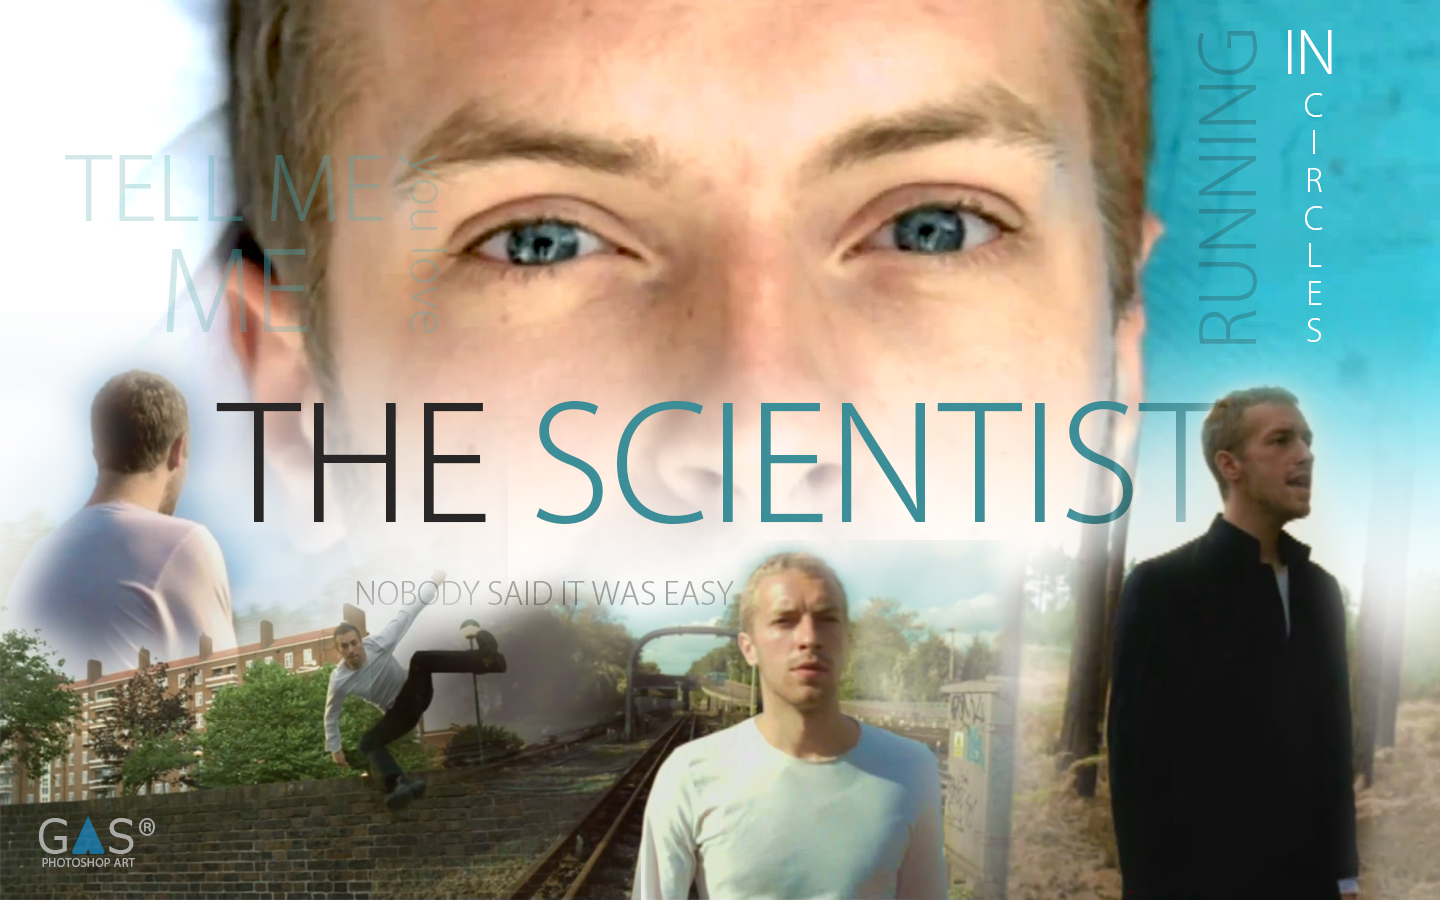 the issue with science in the scientist a music video by coldplay What is the meaning of the song- the scientist by coldplay when i had a severe problem with meaning from its music video.